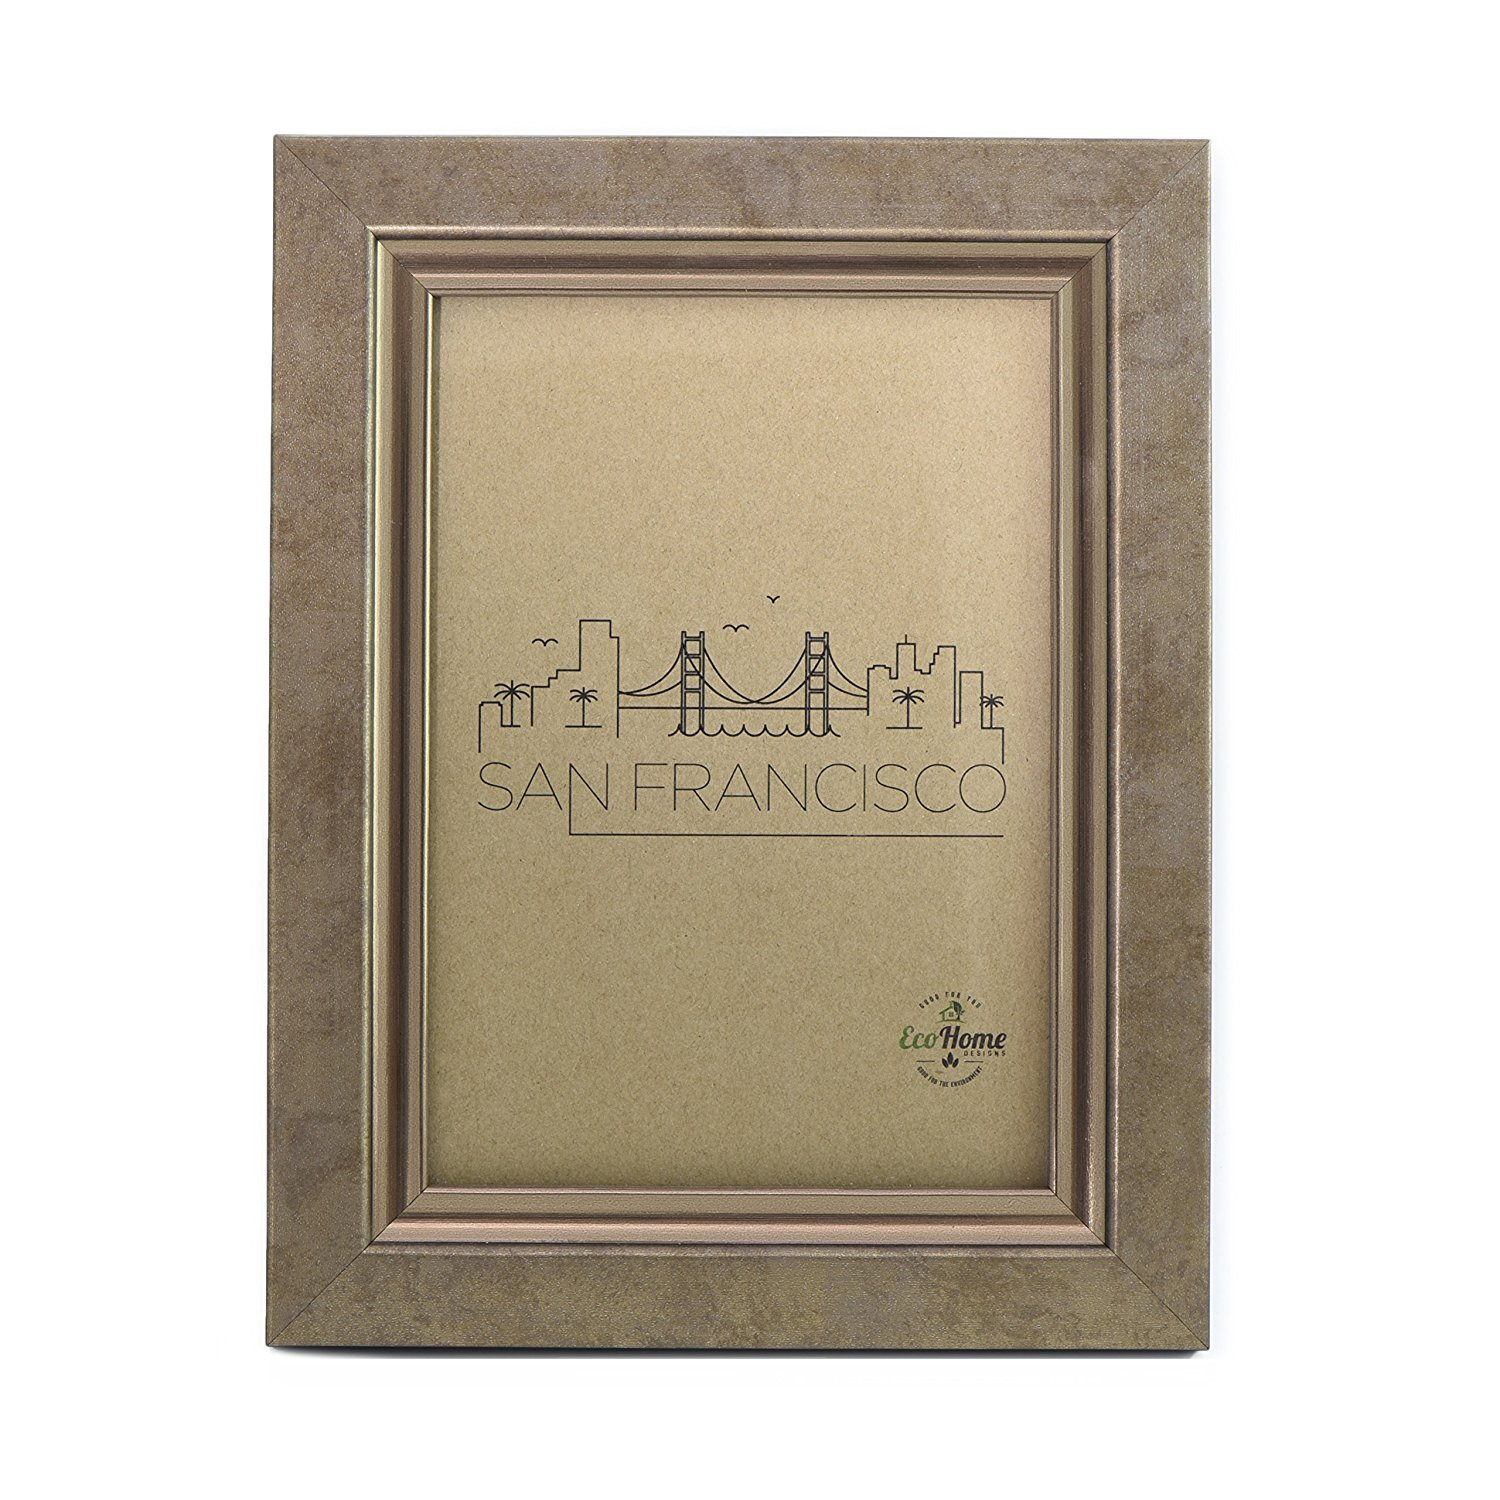 5x7 Picture Frame - Bronze Copper Mount Desktop Display, Frames by EcoHome